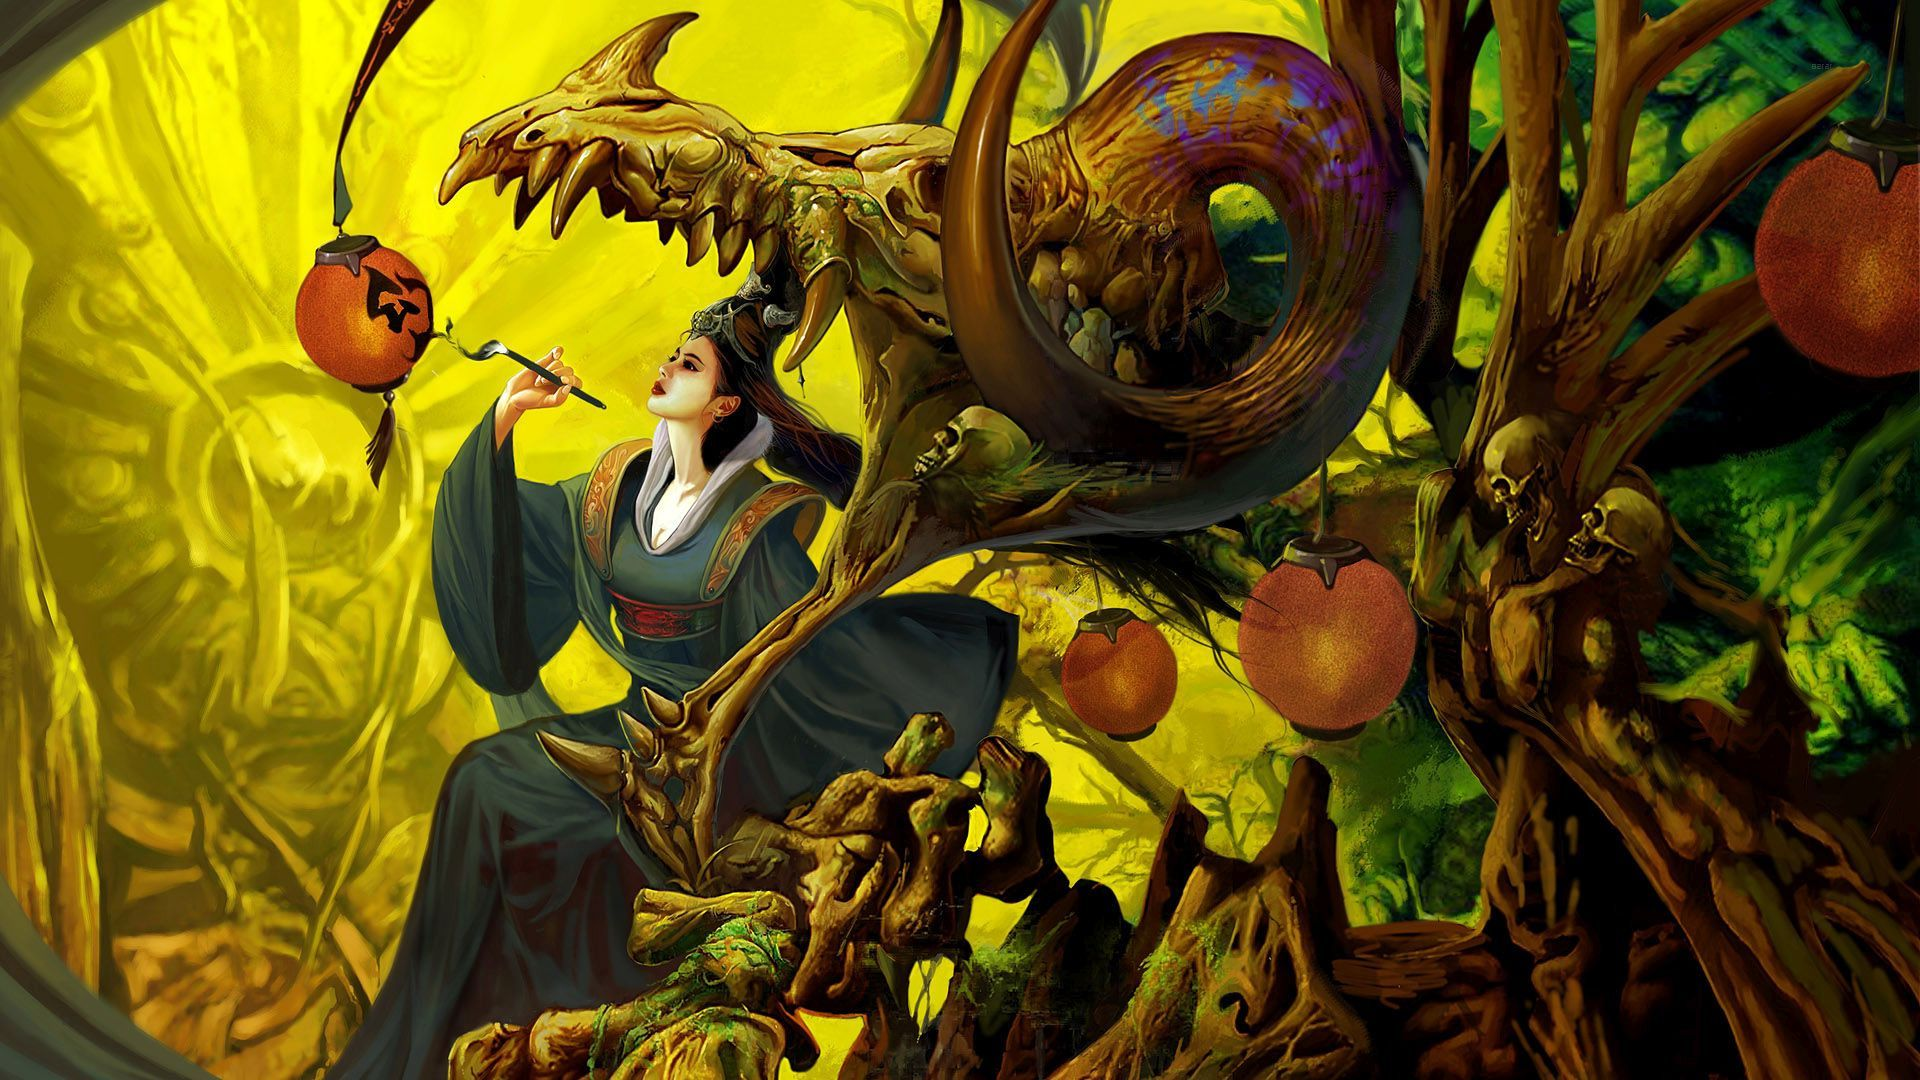 Geisha paintig the lamp wallpaper 41310 1920x1080